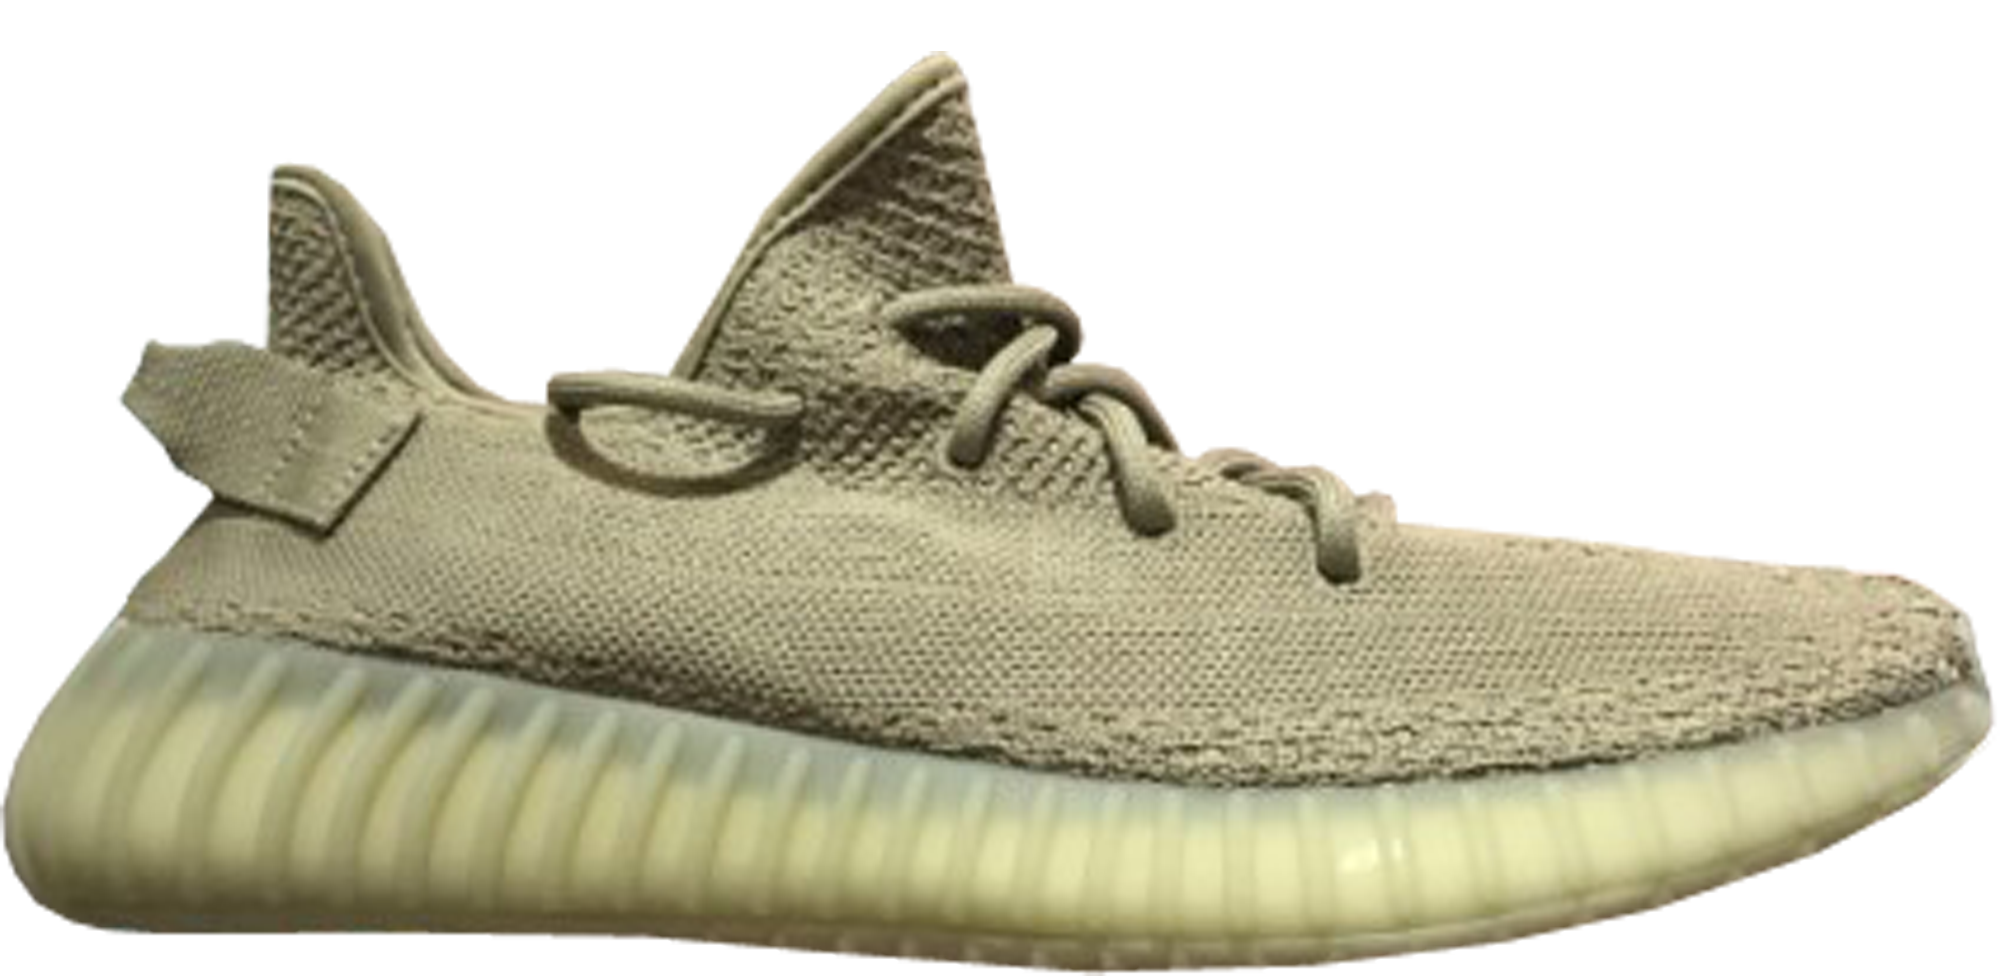 adidas Yeezy Boost 350 V2 Dark Green StockX News